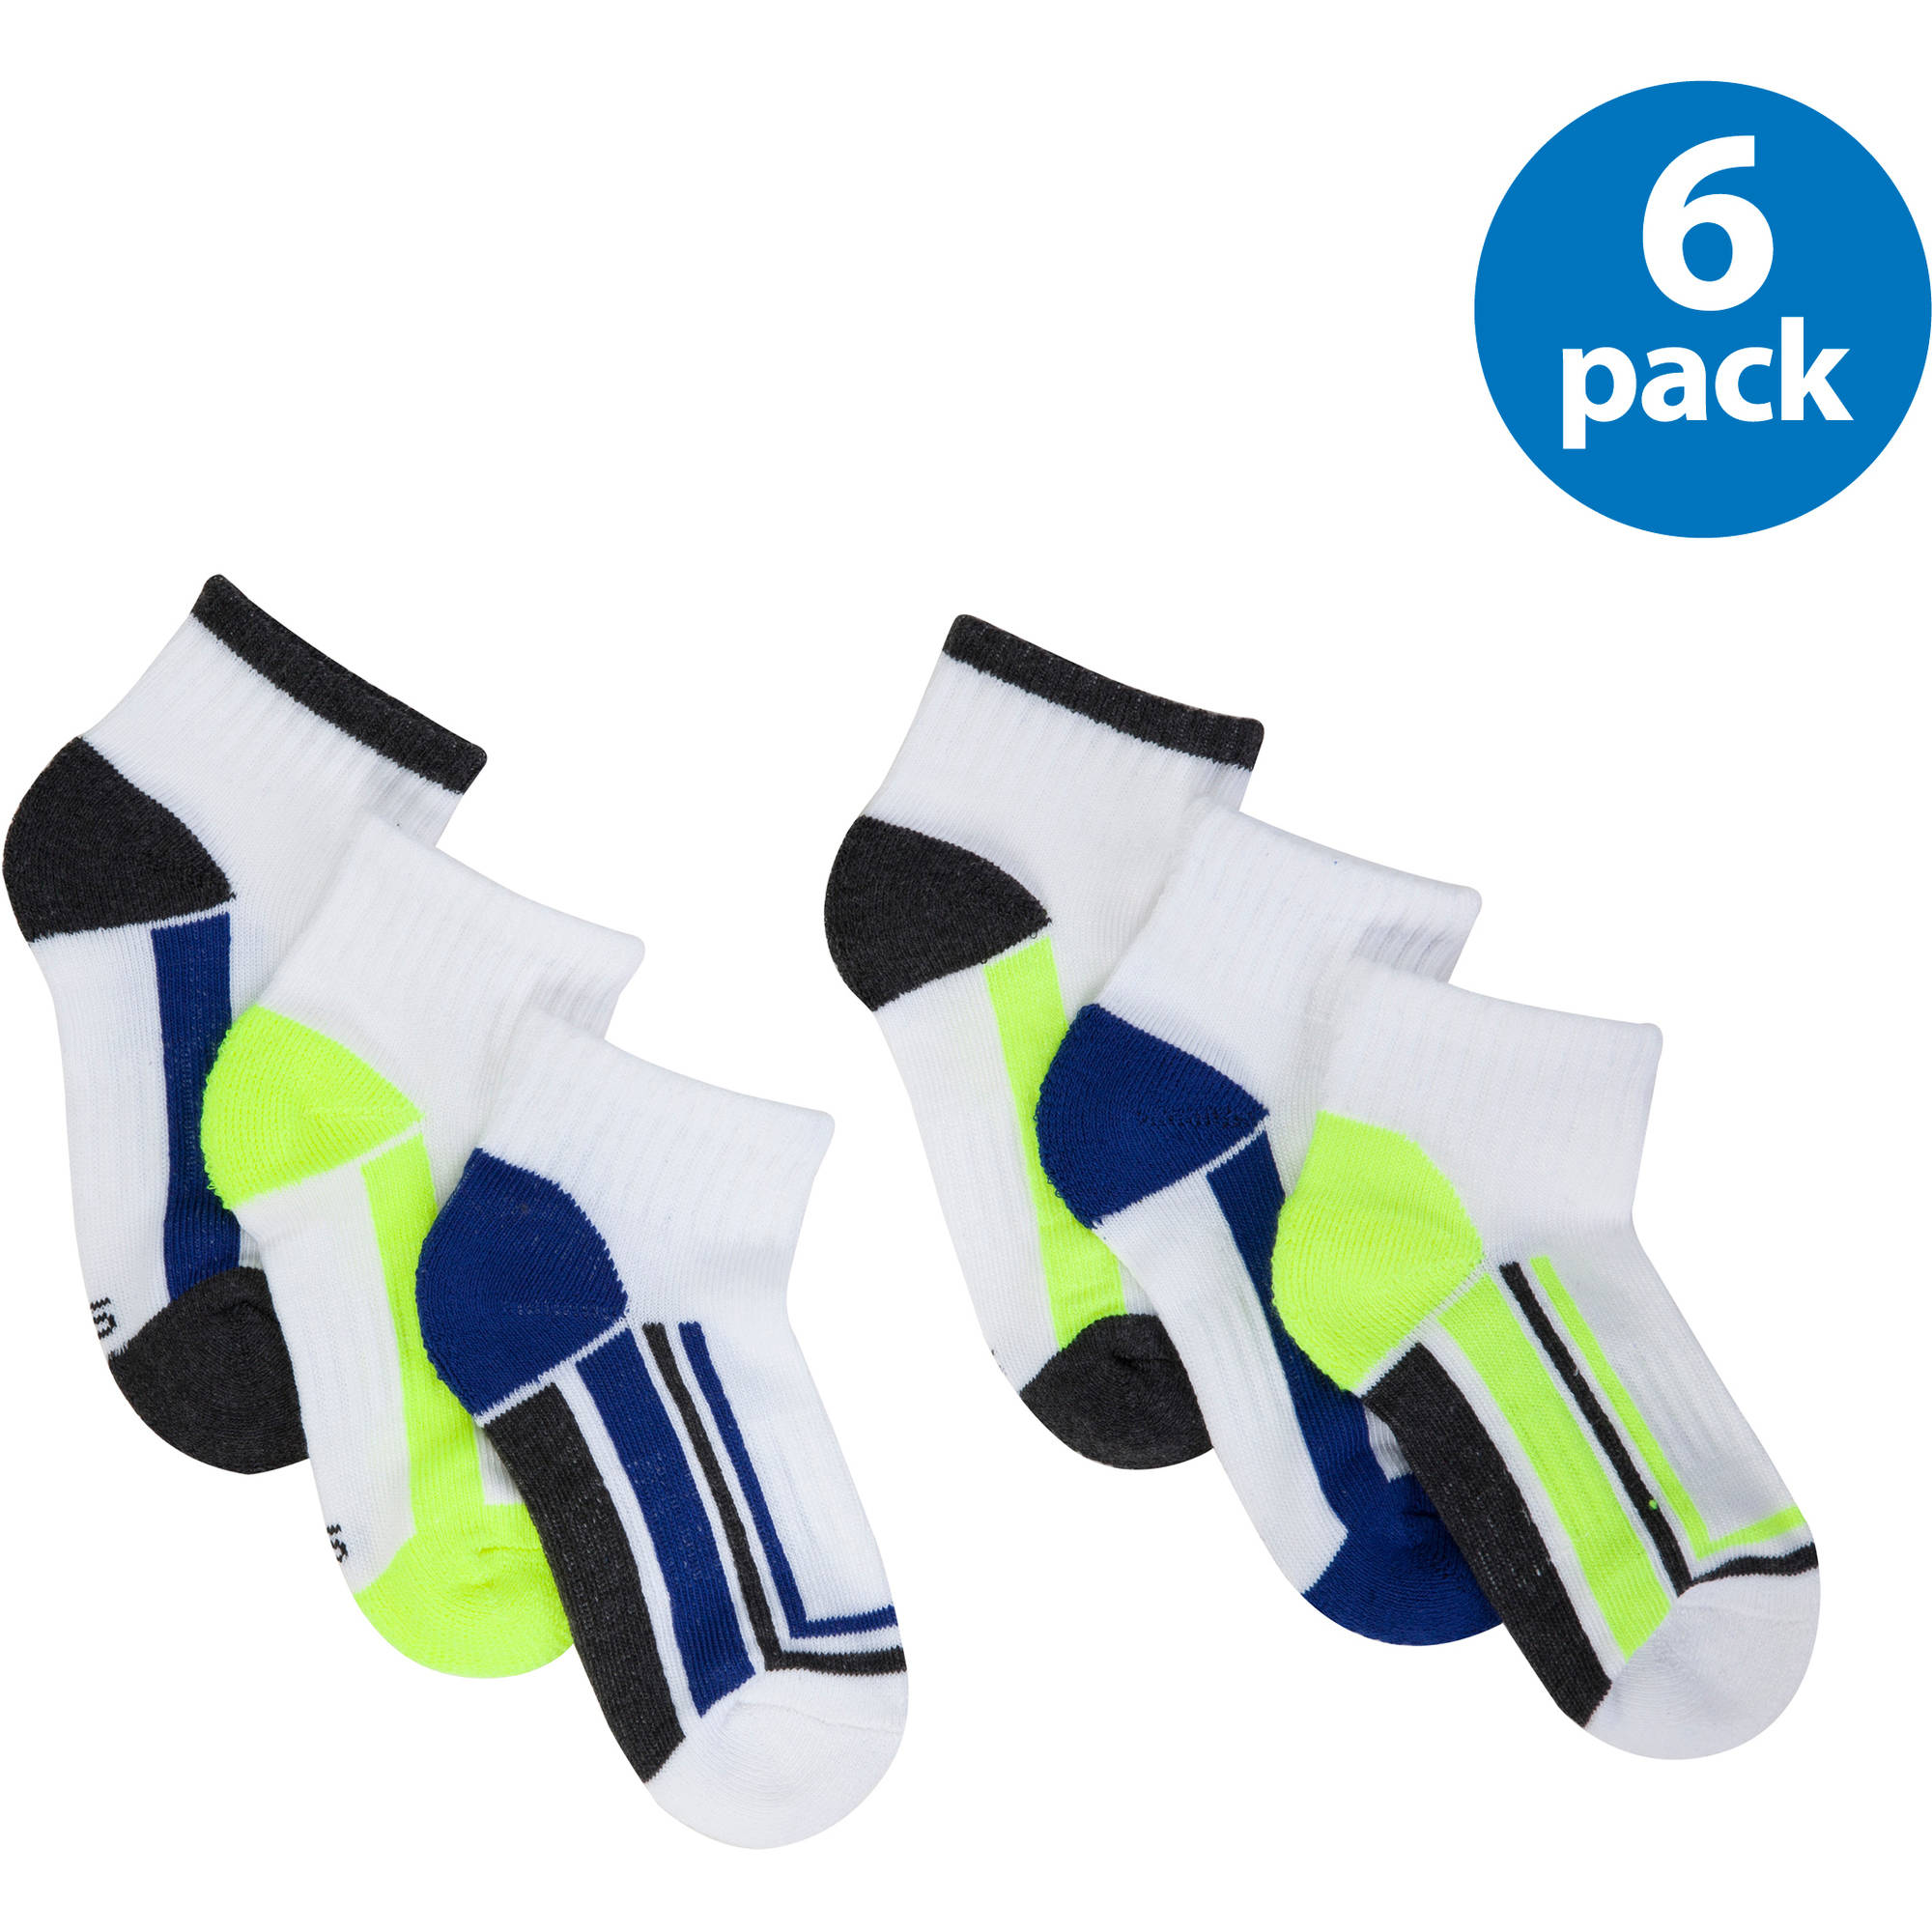 Starter Boys Ankle Socks, 6-pack